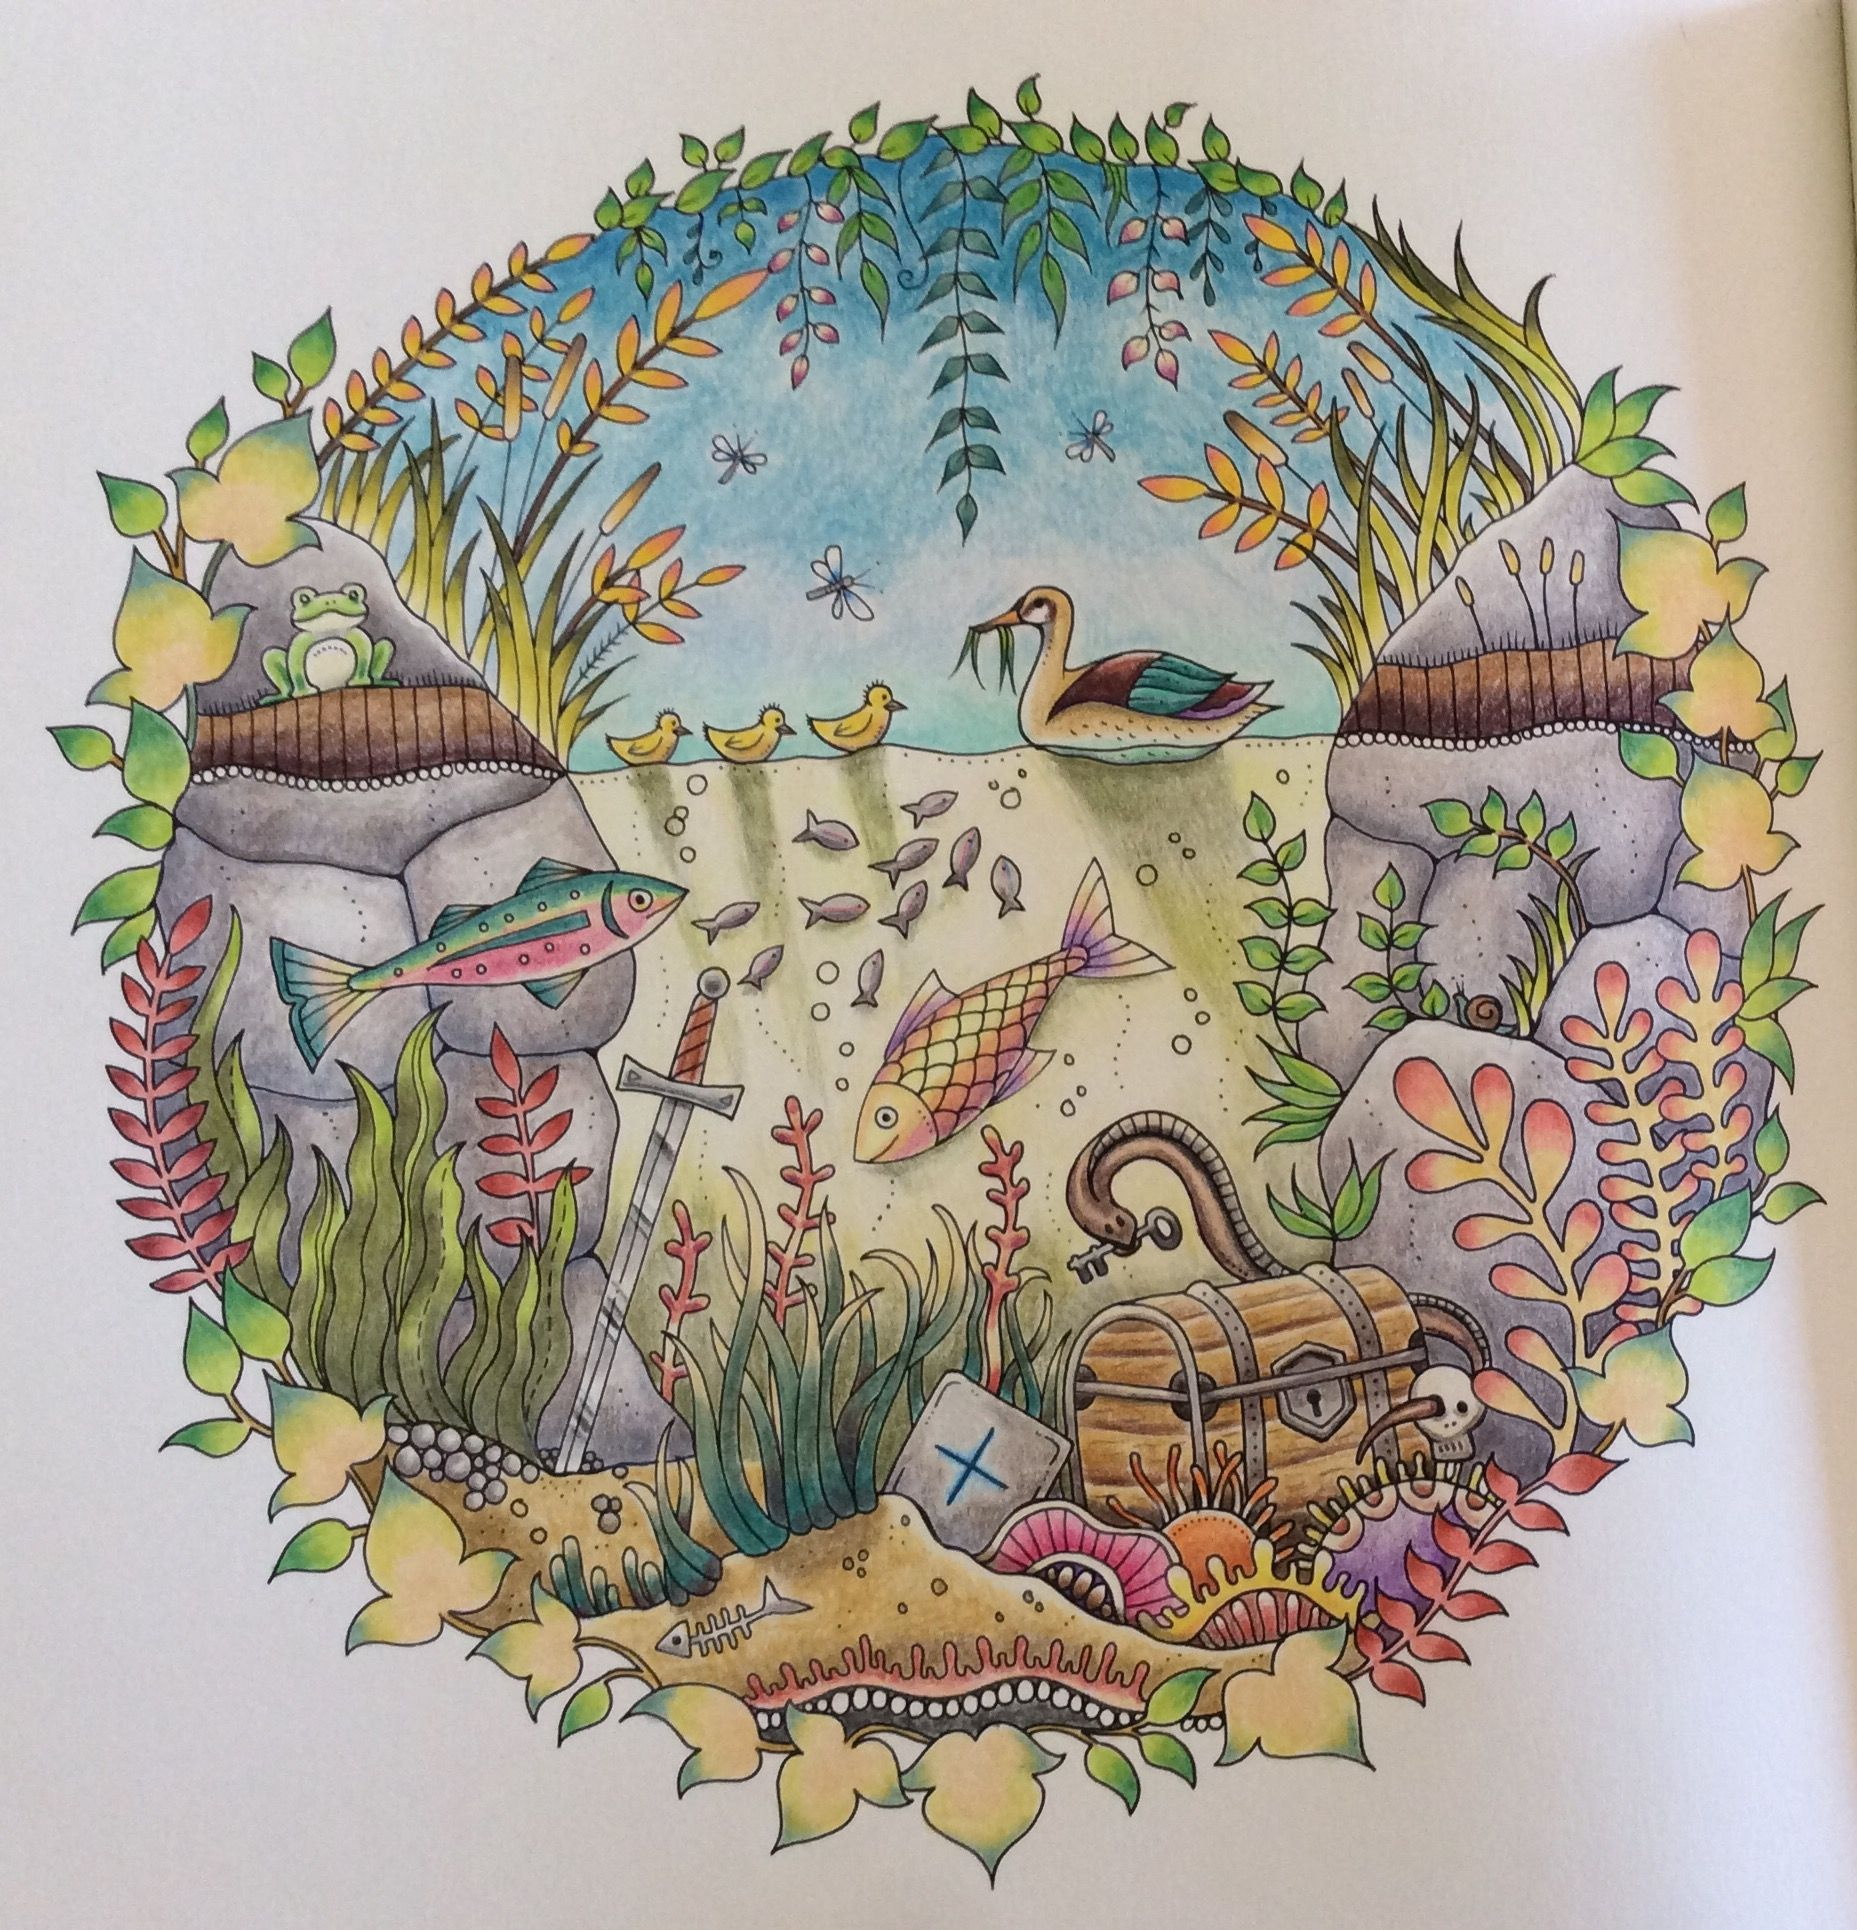 Enchanted Forest Coloring Book By Johanna Basford The Duck Pond Enchanted Forest Coloring Enchanted Forest Coloring Book Forest Coloring Book